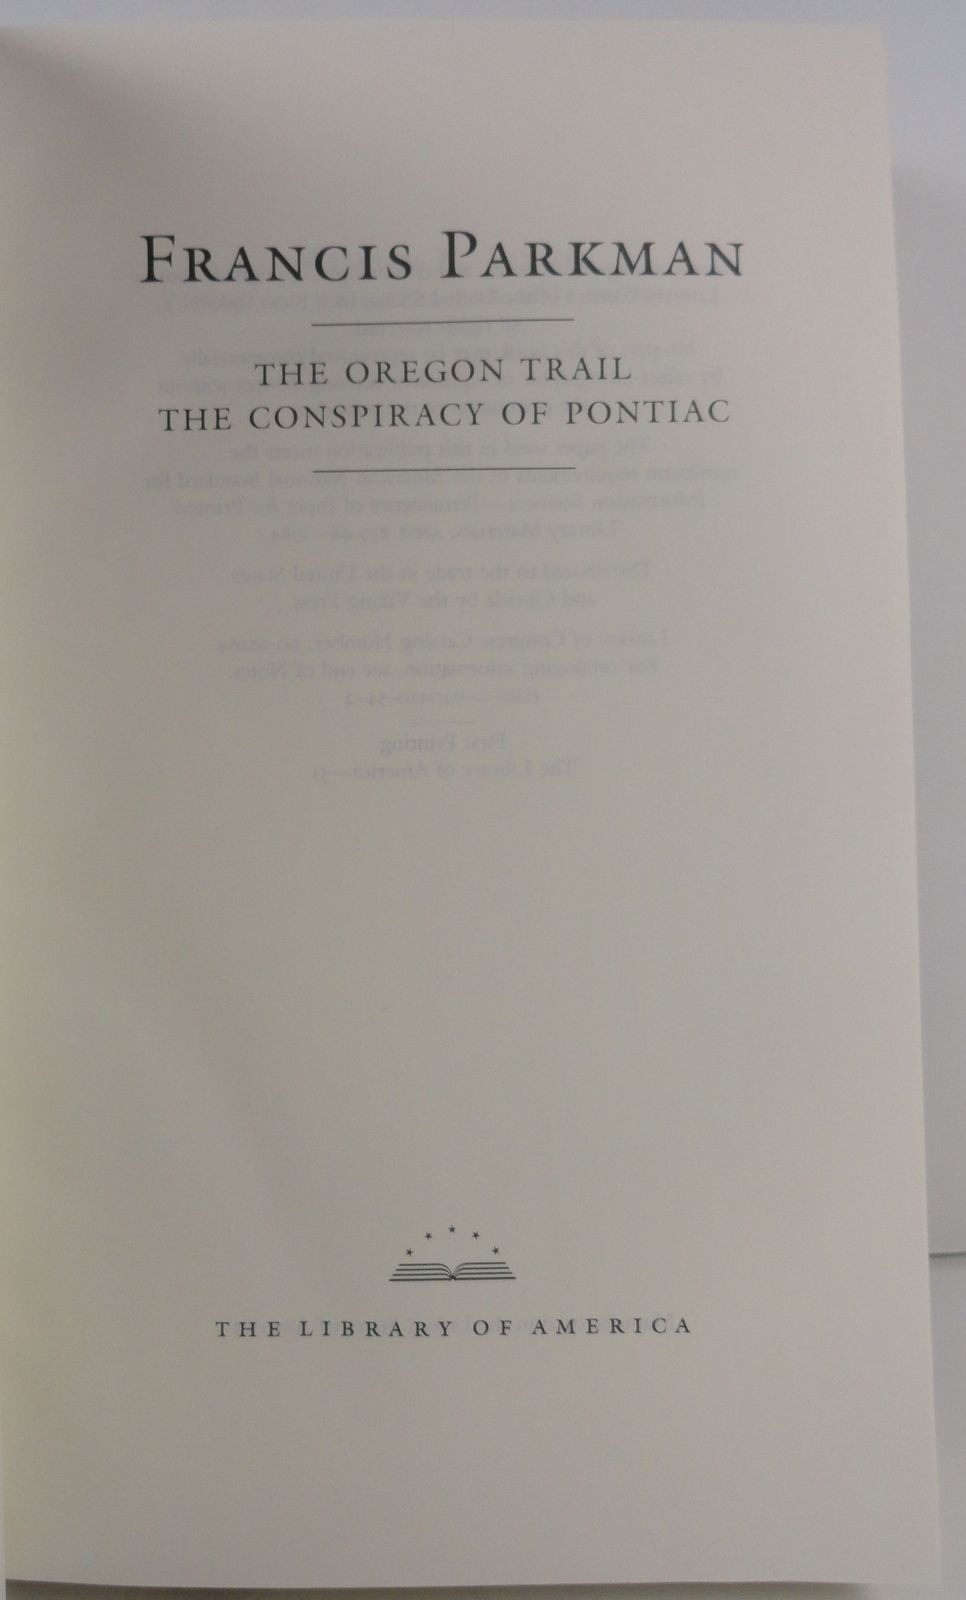 The Oregon Trail Conspiracy of Pontiac by Francis Parkman